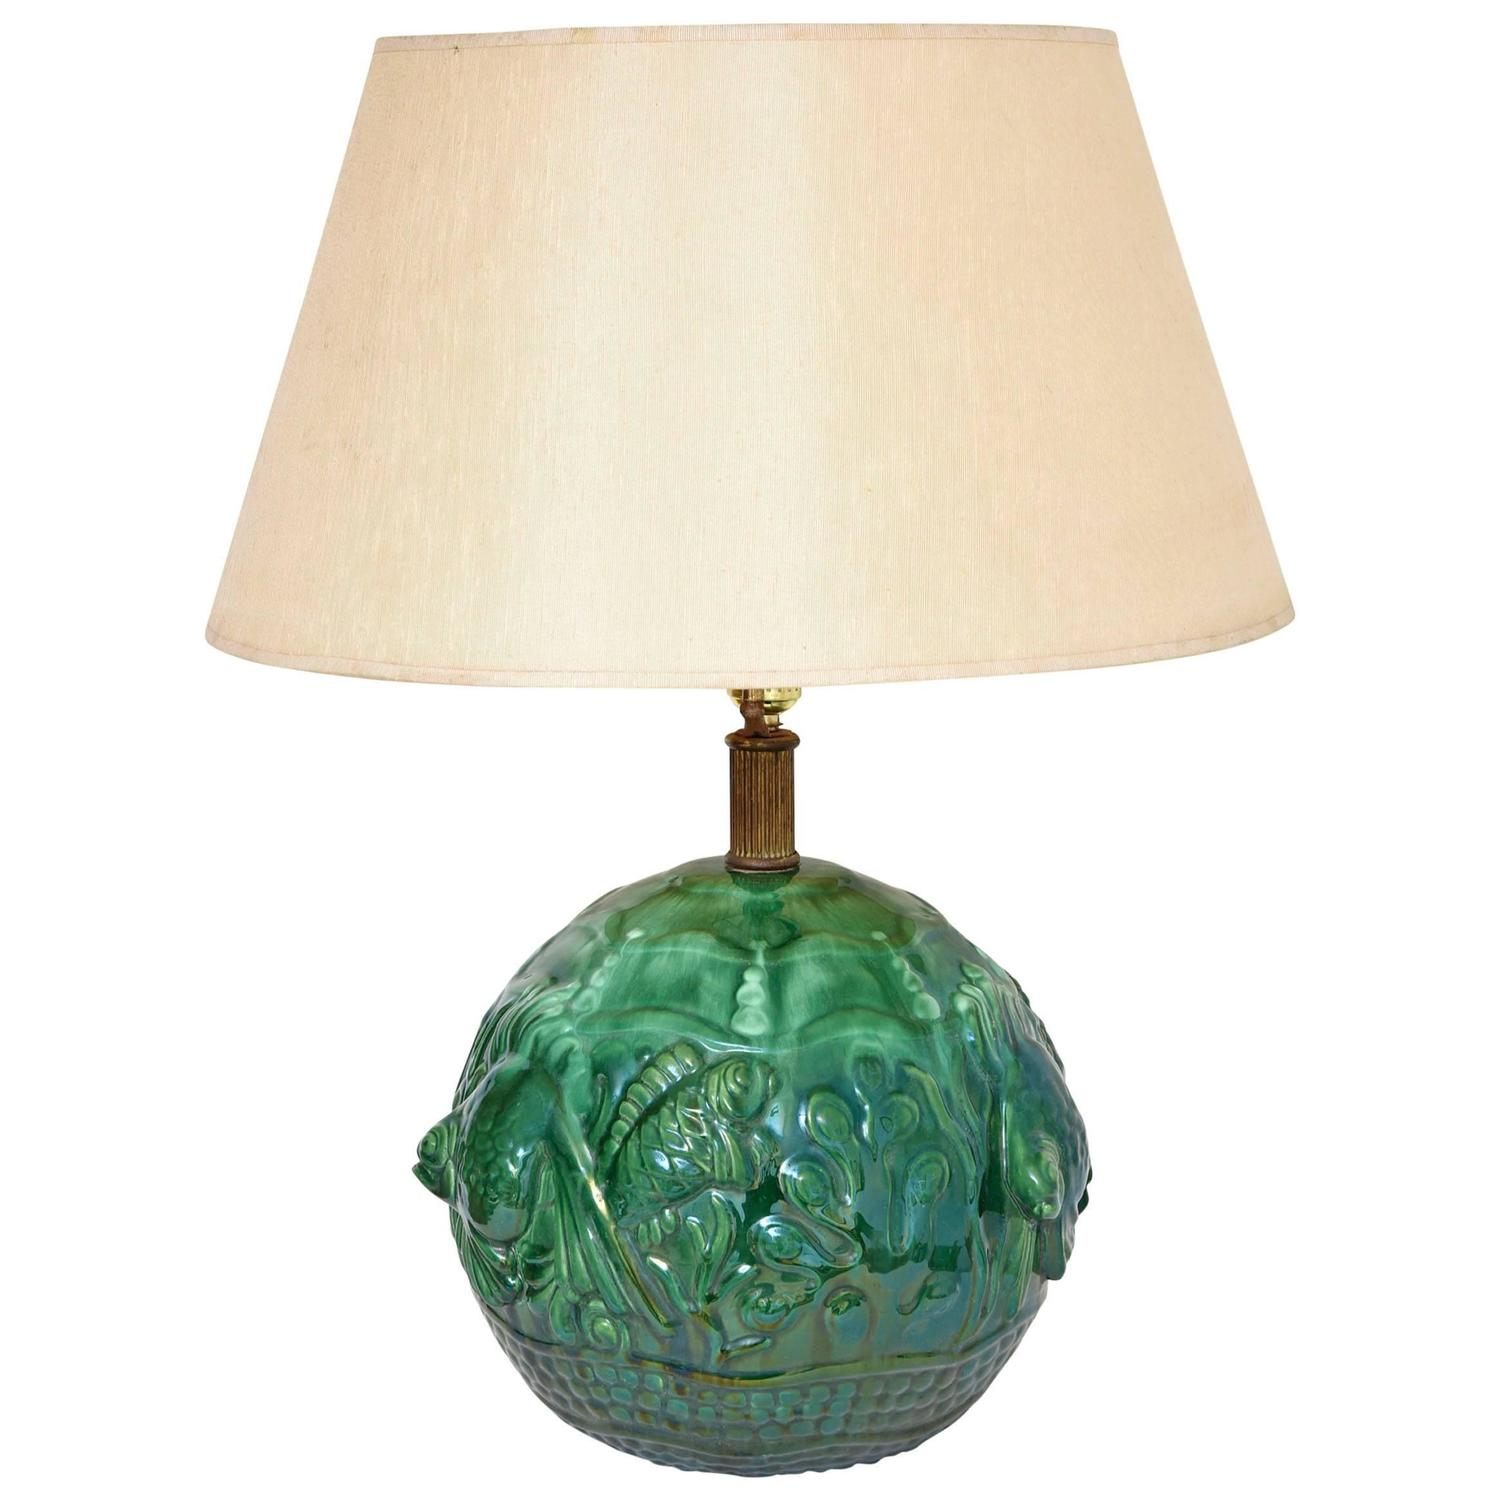 Green Lamp Painting : French art deco green ceramic fish lamp for sale at stdibs